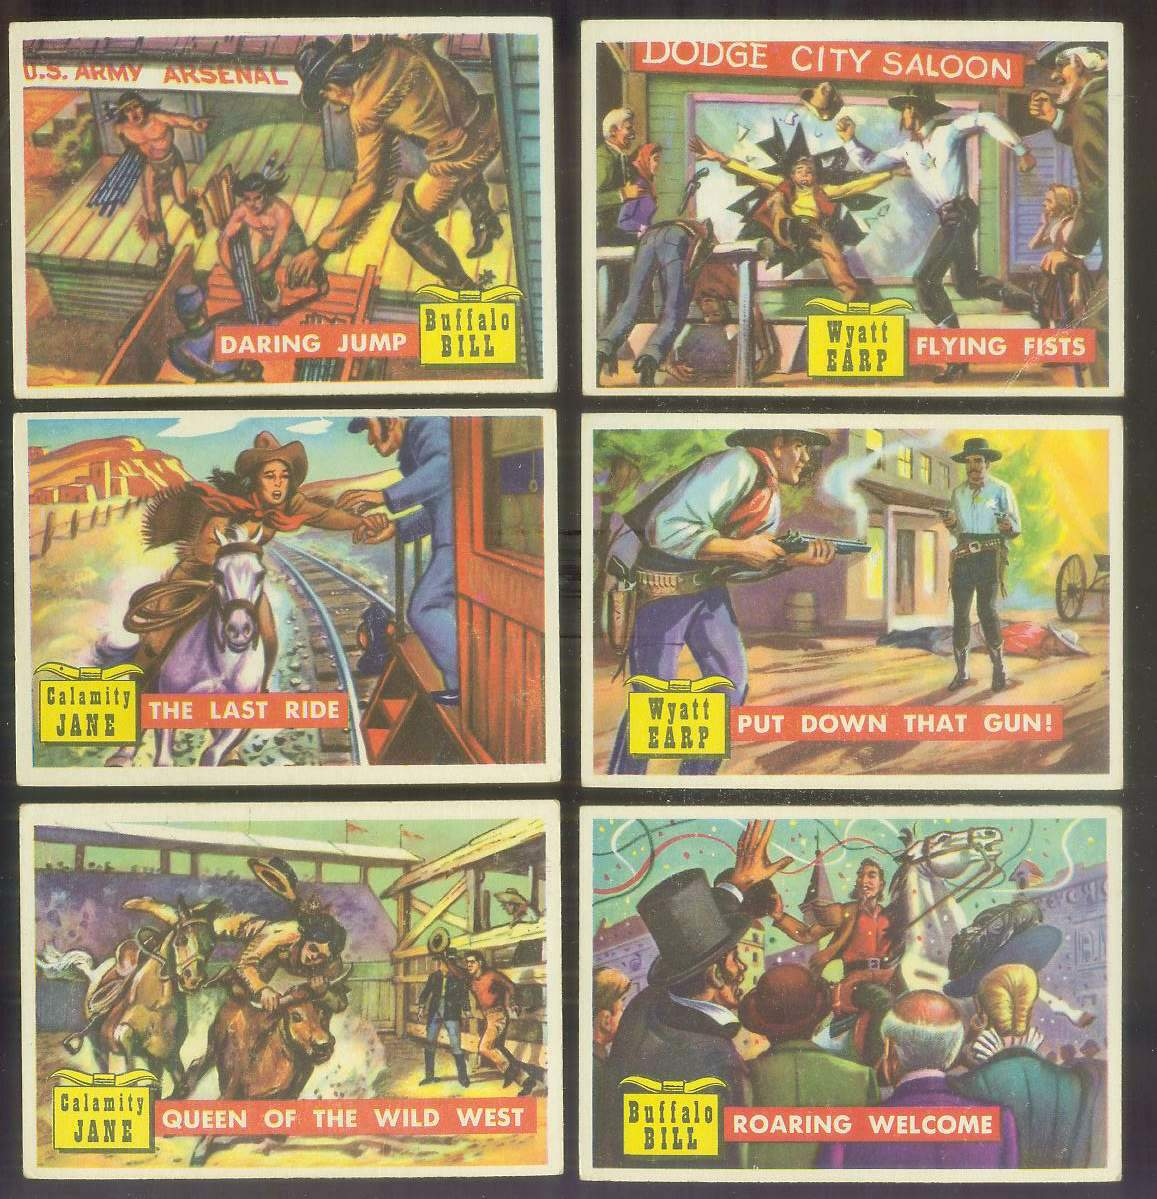 1956 Topps ROUND UP #20 'The Last Ride' (Calamity Jane) Non-Sport cards value